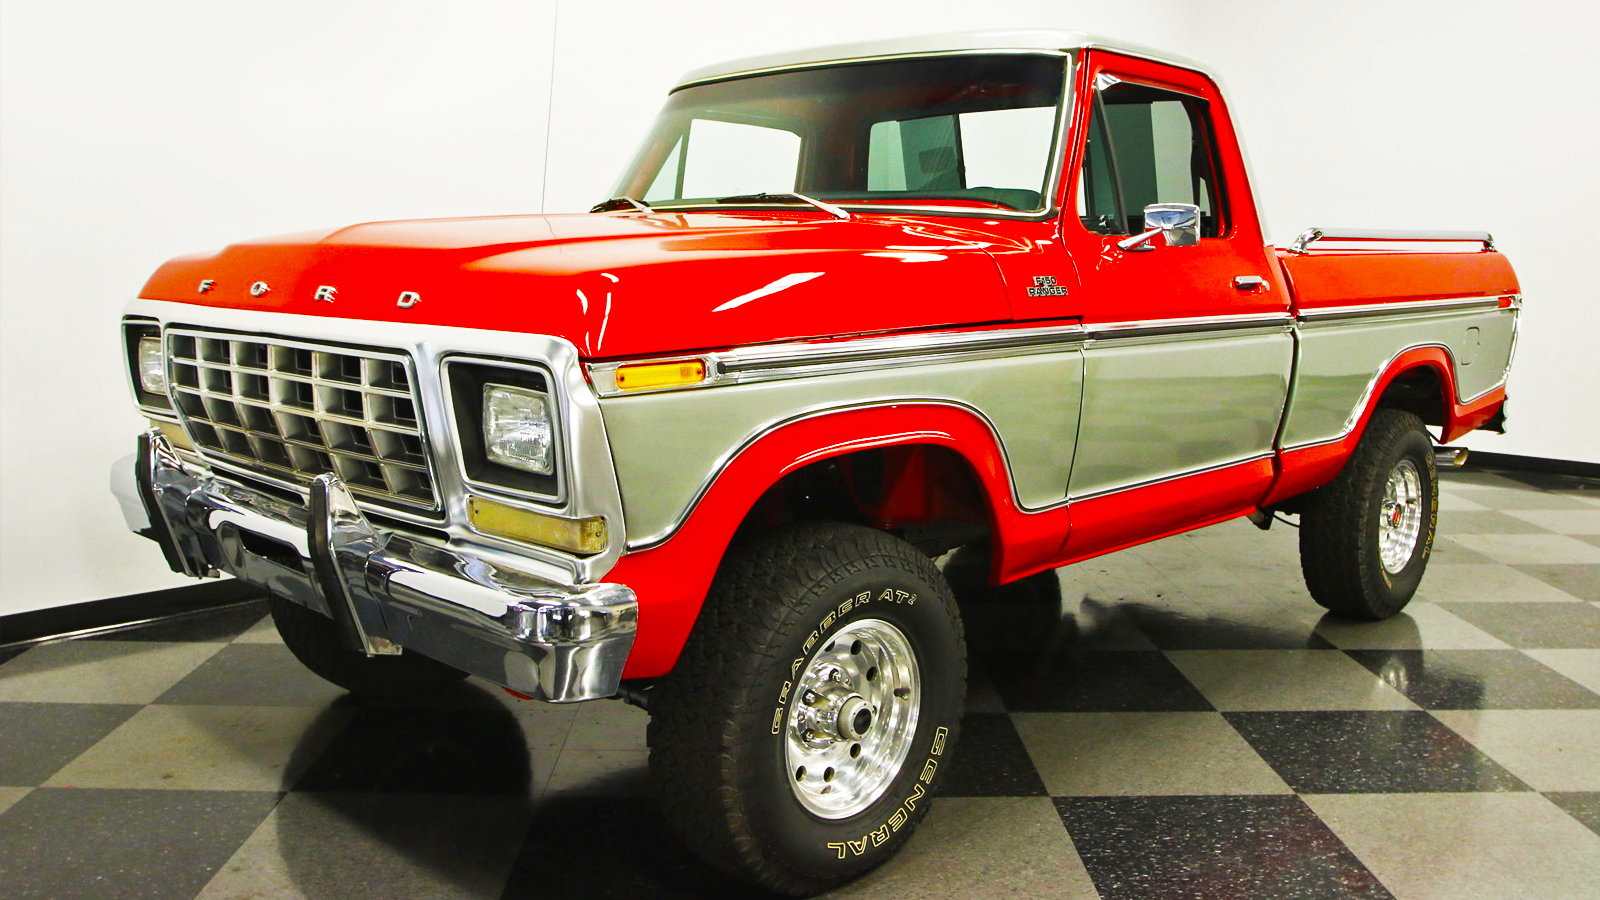 1979 Ranger Grabs All the Attention